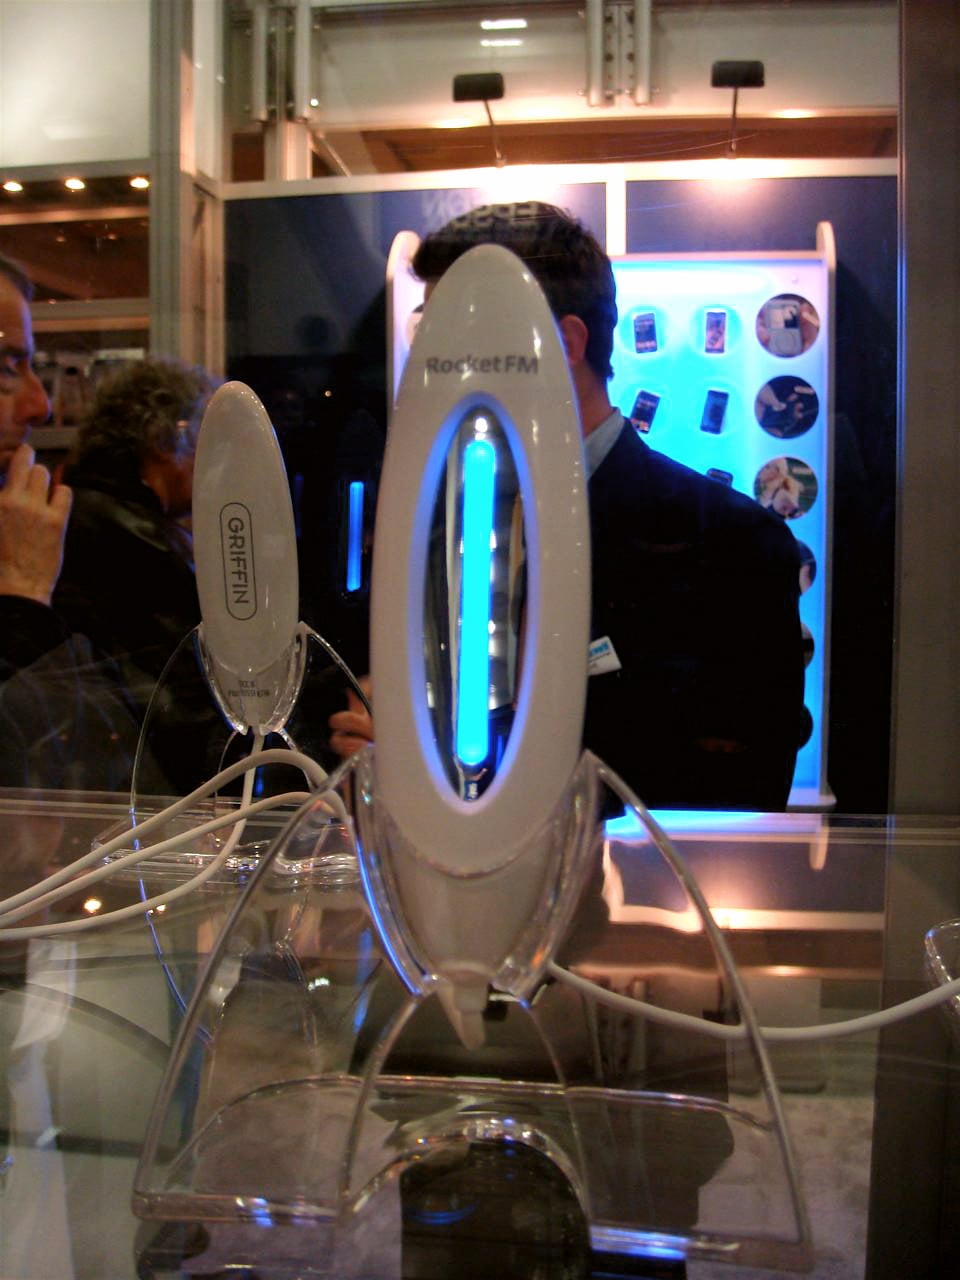 Macworld 2008: Griffin's RocketFM Transmitter